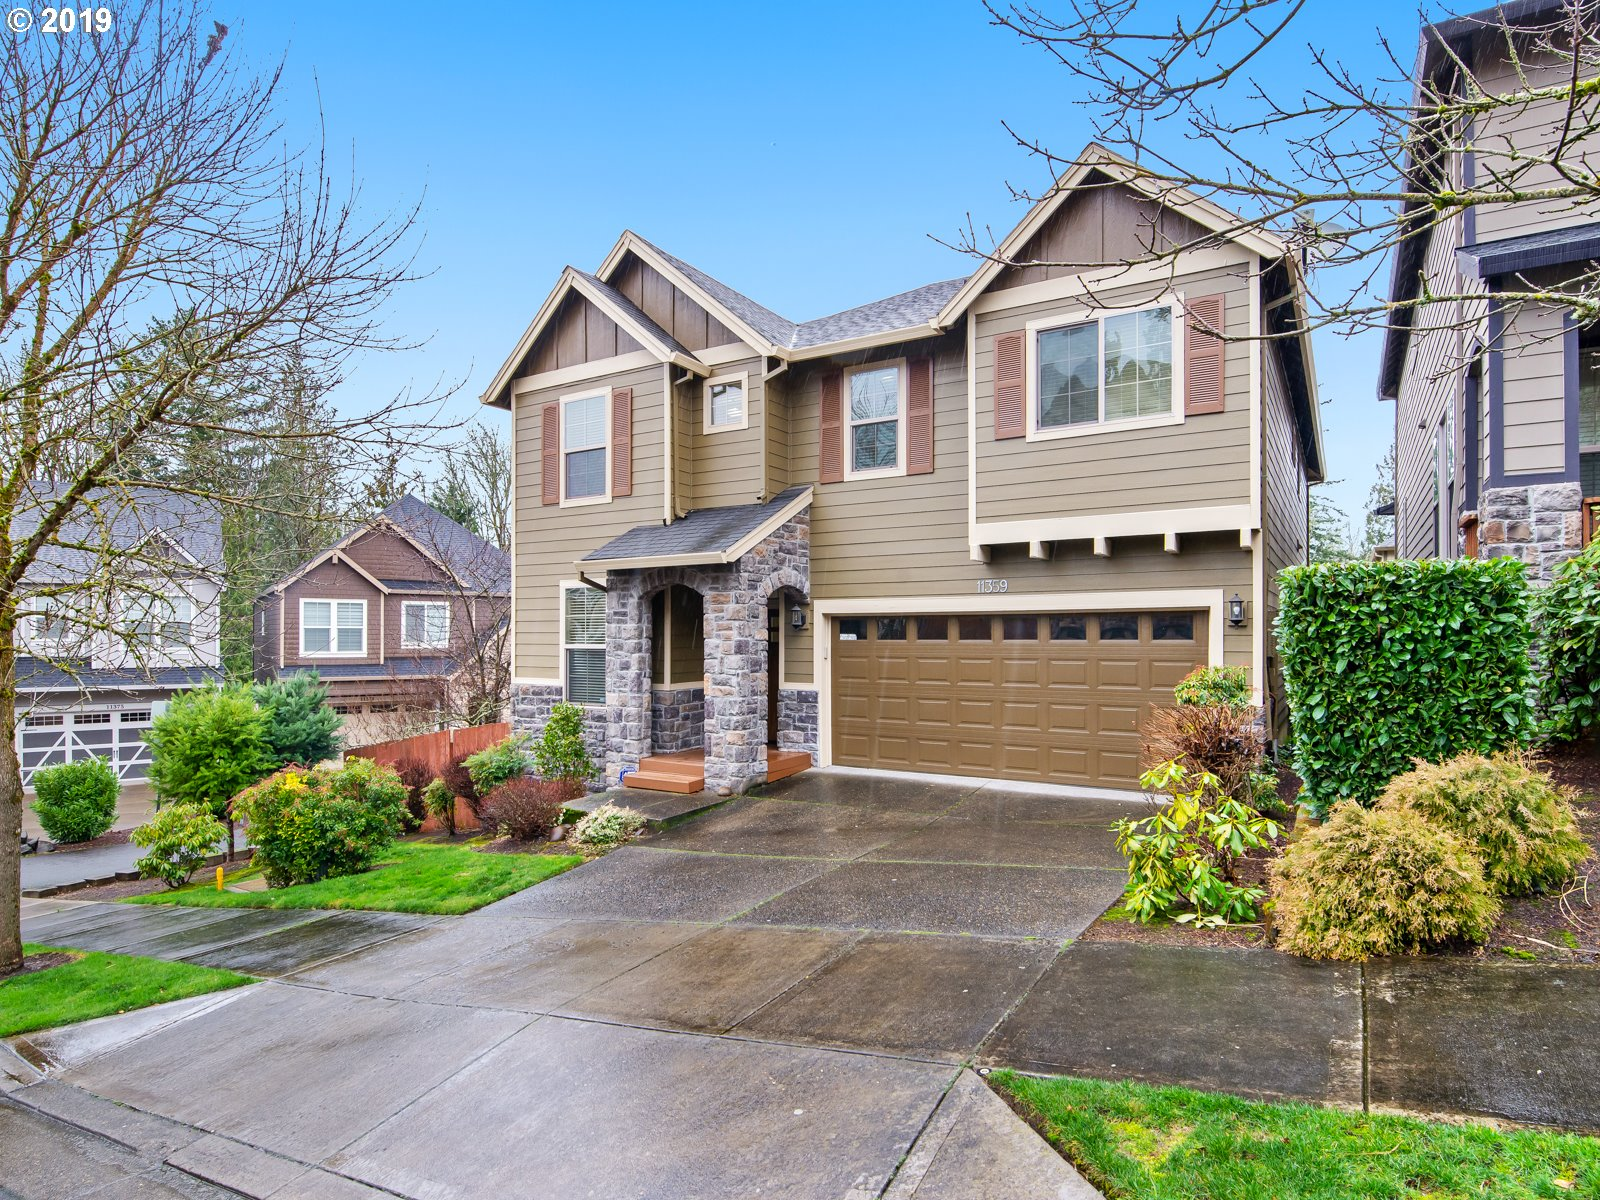 Photo for 11359 NW ODEON LN, Portland, OR 97229 (MLS # 19023729)